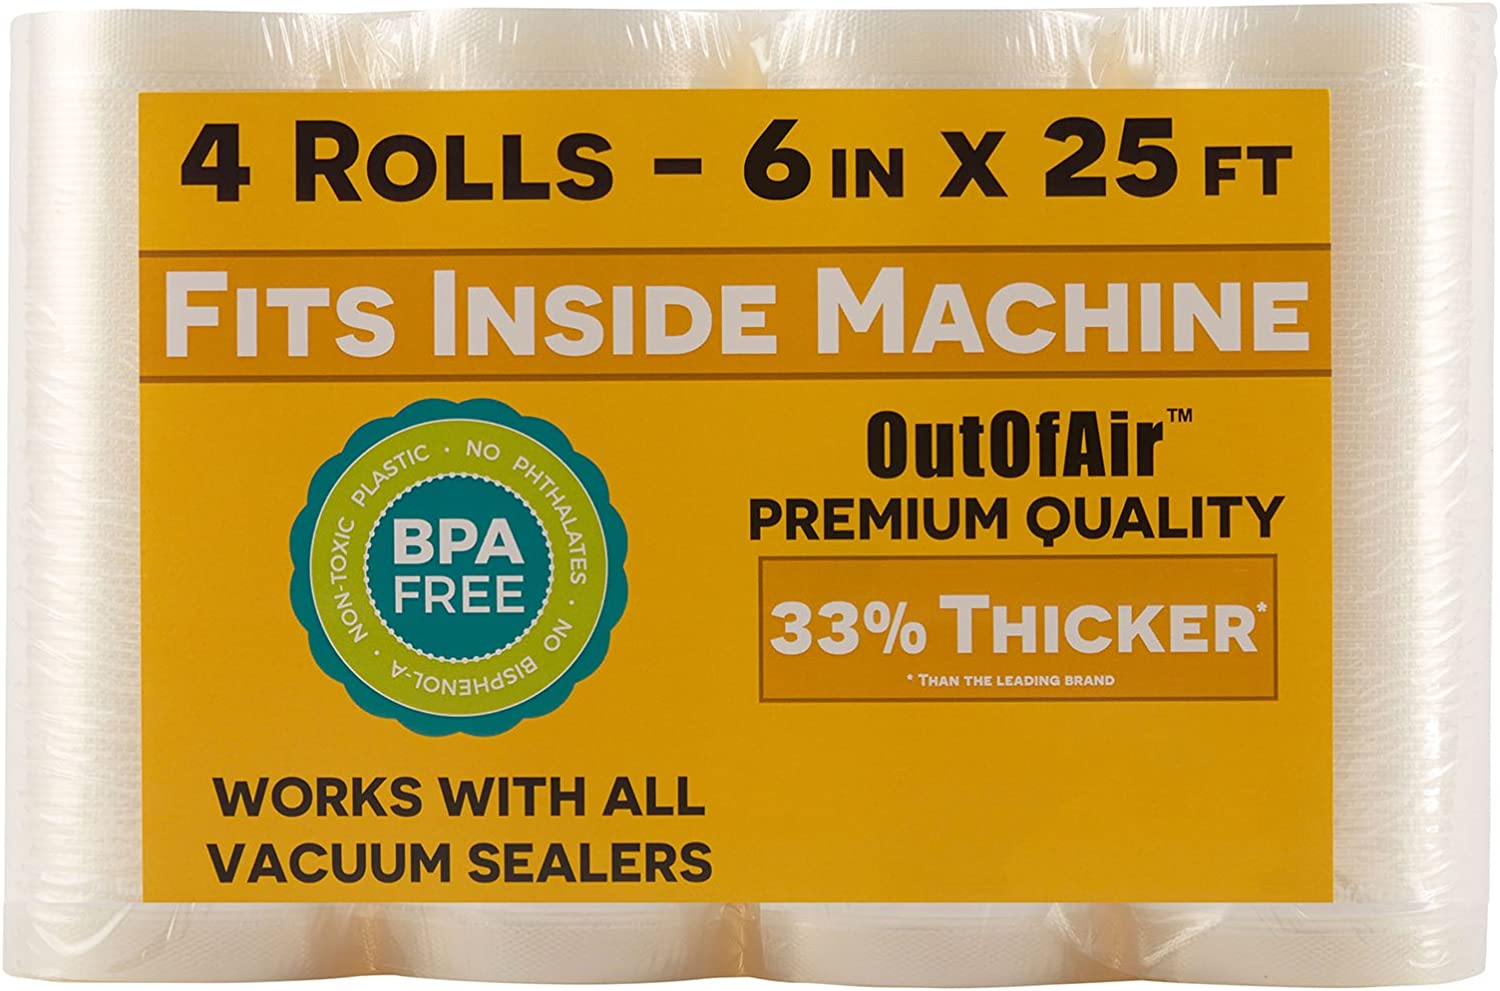 "6"" x 25' Rolls (Fits Inside Machine) - 4 Pack (100 feet total) OutOfAir Pint Vacuum Sealer Rolls. Works with FoodSaver Vacuum Sealers. 33% Thicker, BPA Free, Sous Vide, Commercial Grade"